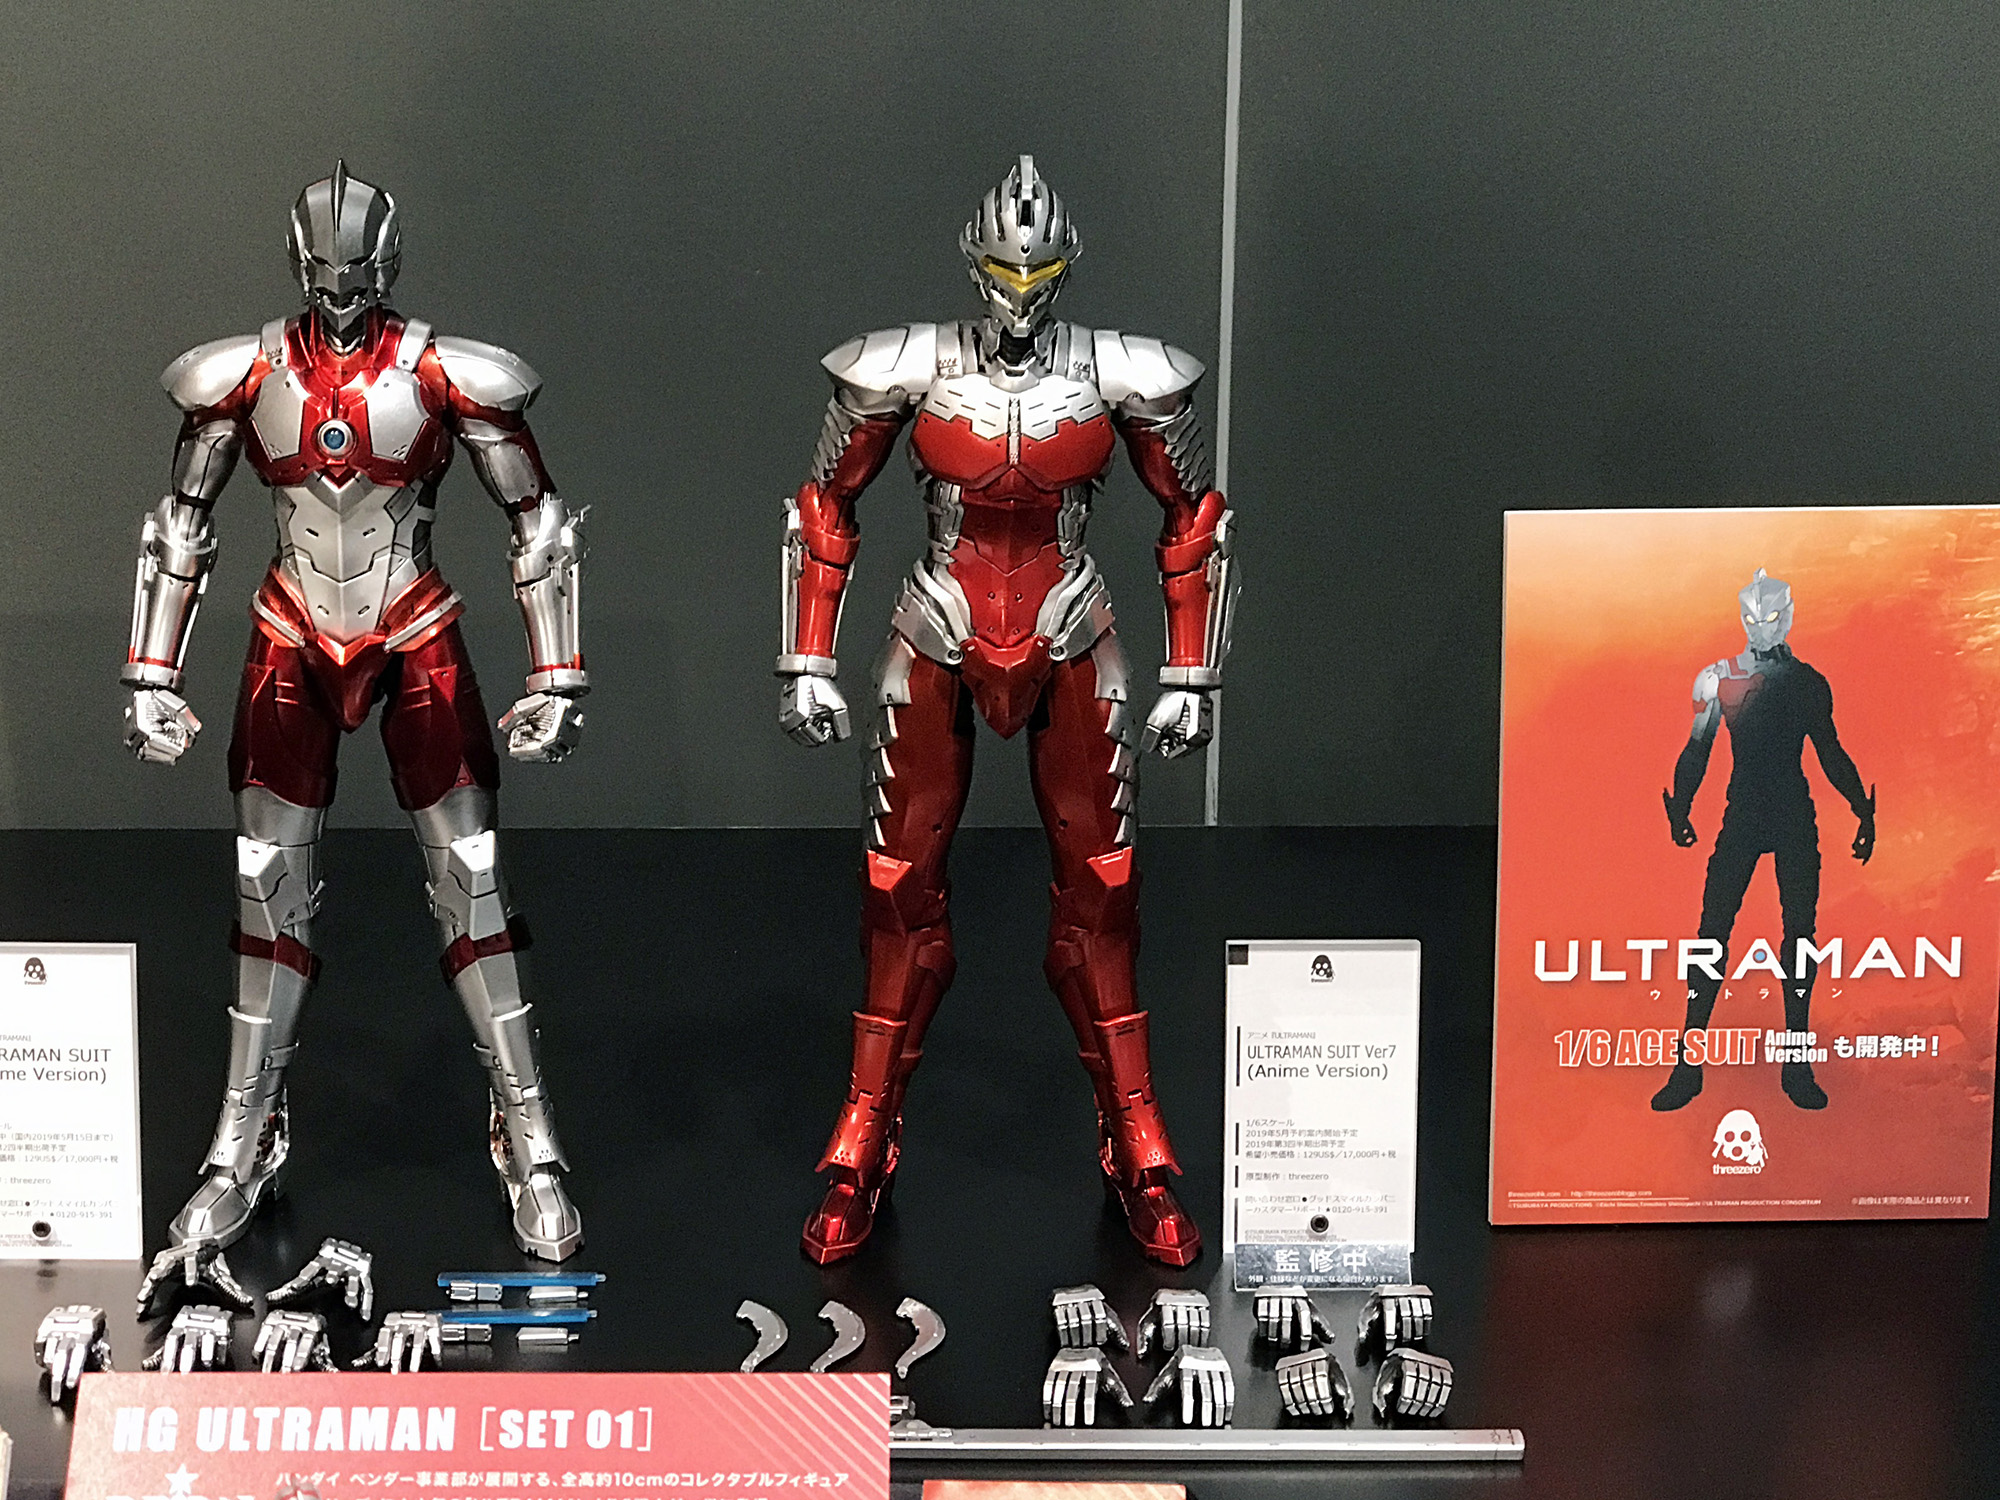 ultramanexhibit_02.jpg